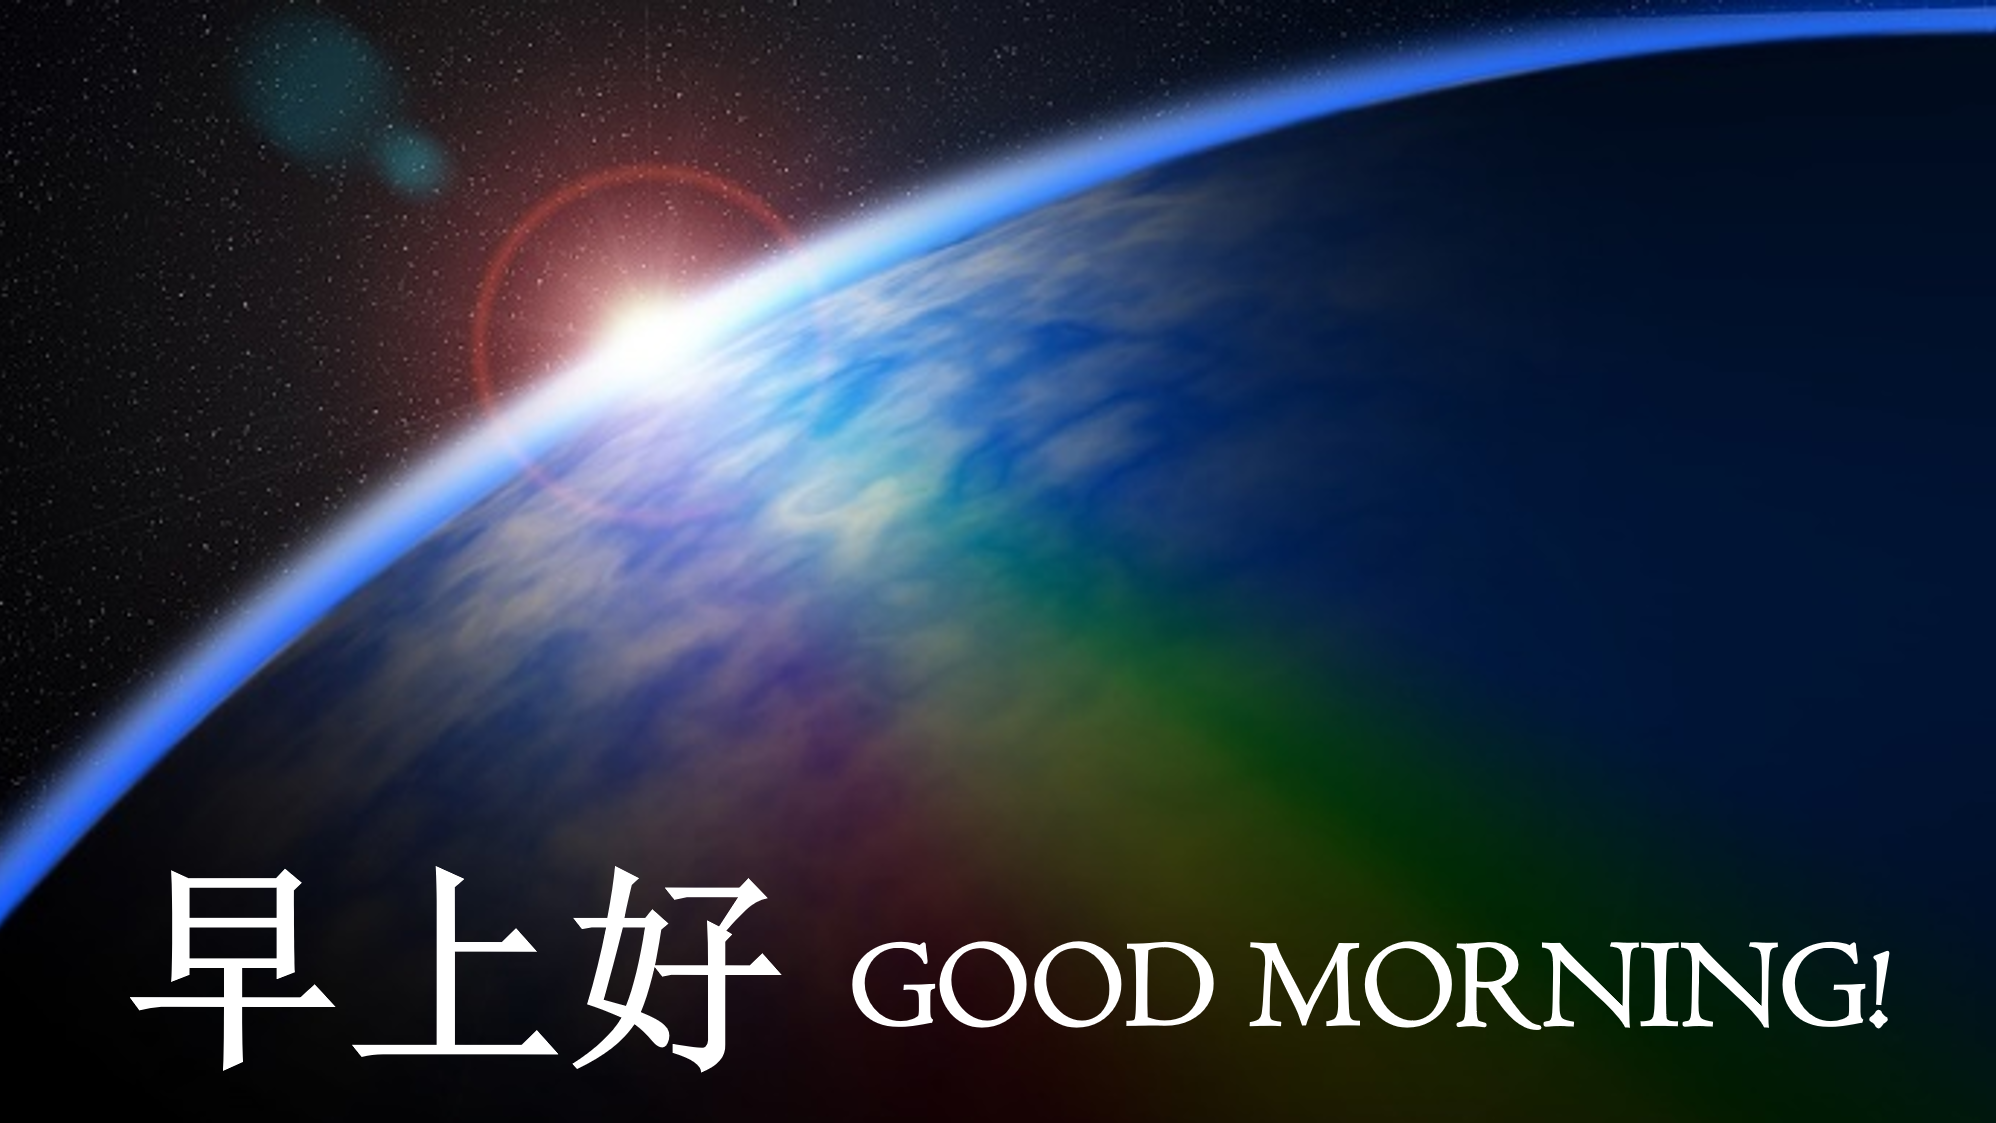 Good morning 早上好 Chinese Message main image